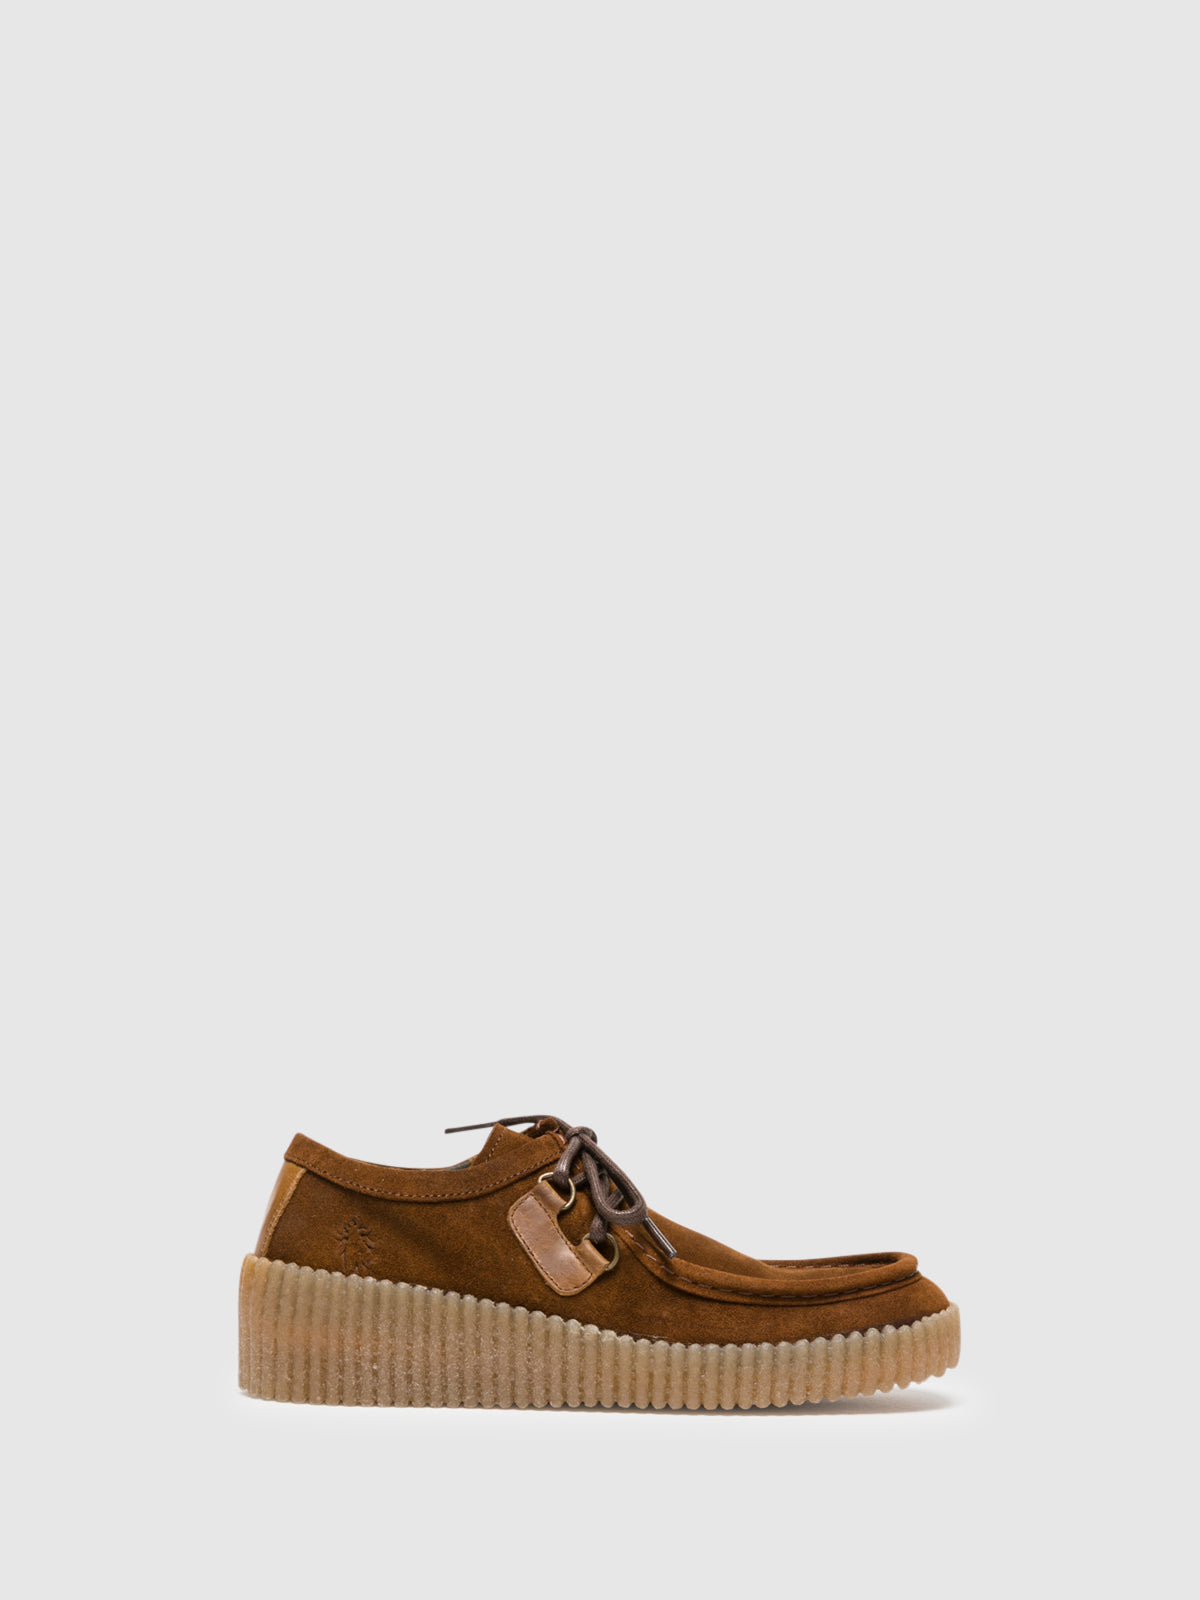 Fly London Schuhe mit Plateauabsatz in Camel